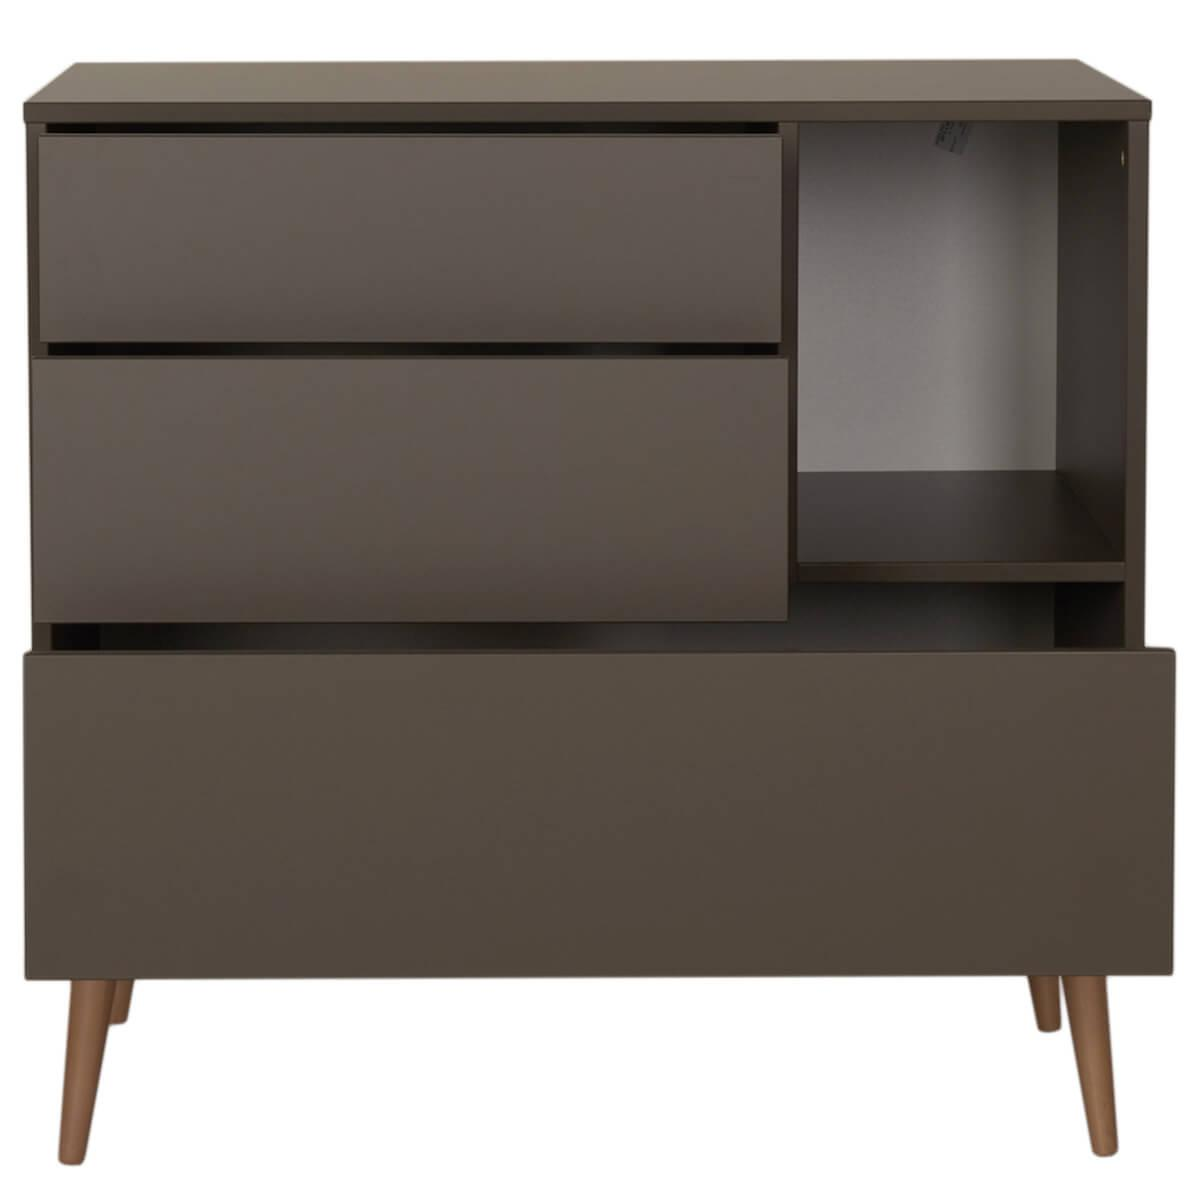 Commode 96x58cm COCOON Quax Moss